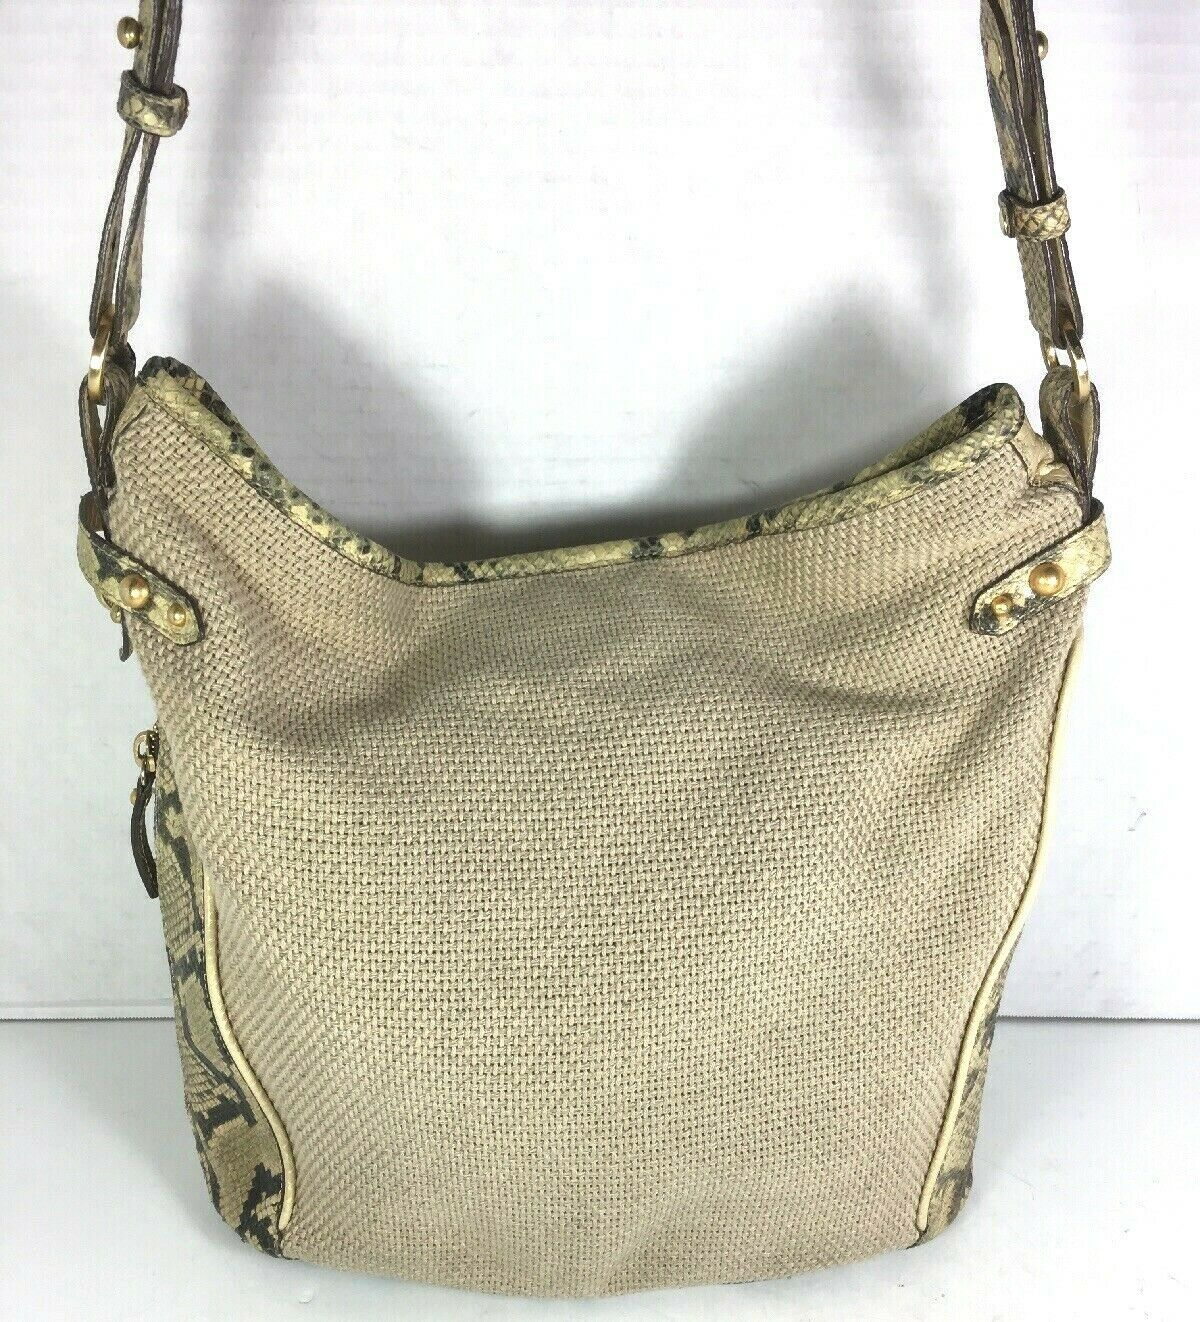 Brahmin Beige Fabric and Reptile Print Trim Shoulder Bag- Well Worn image 1